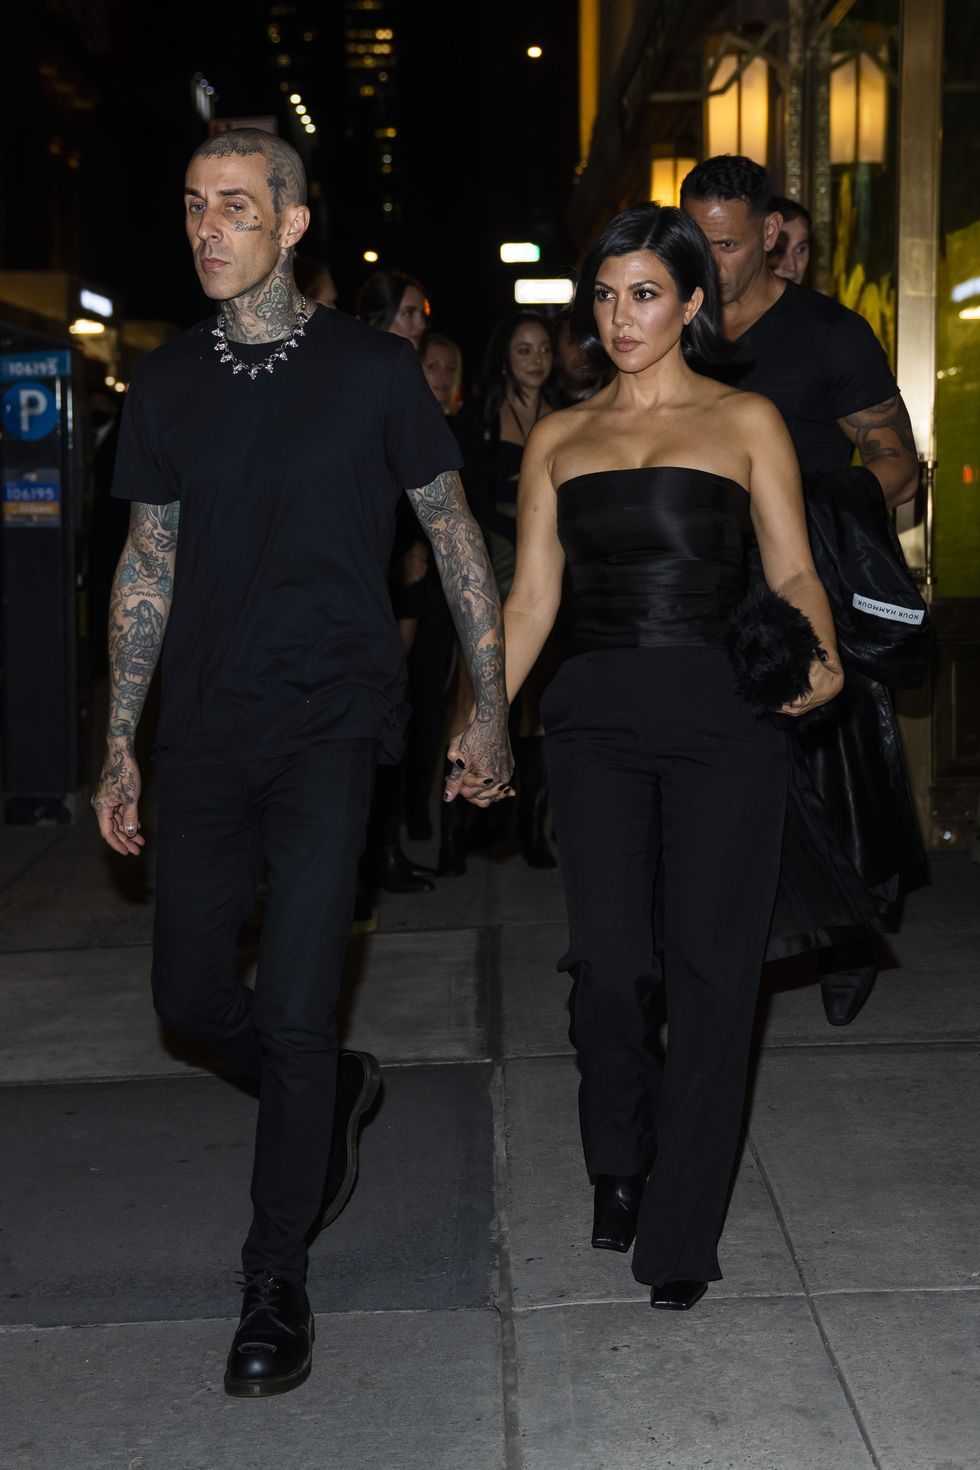 Kourtney Kardashian and Travis Barker Matched In Black For NYC Date Night